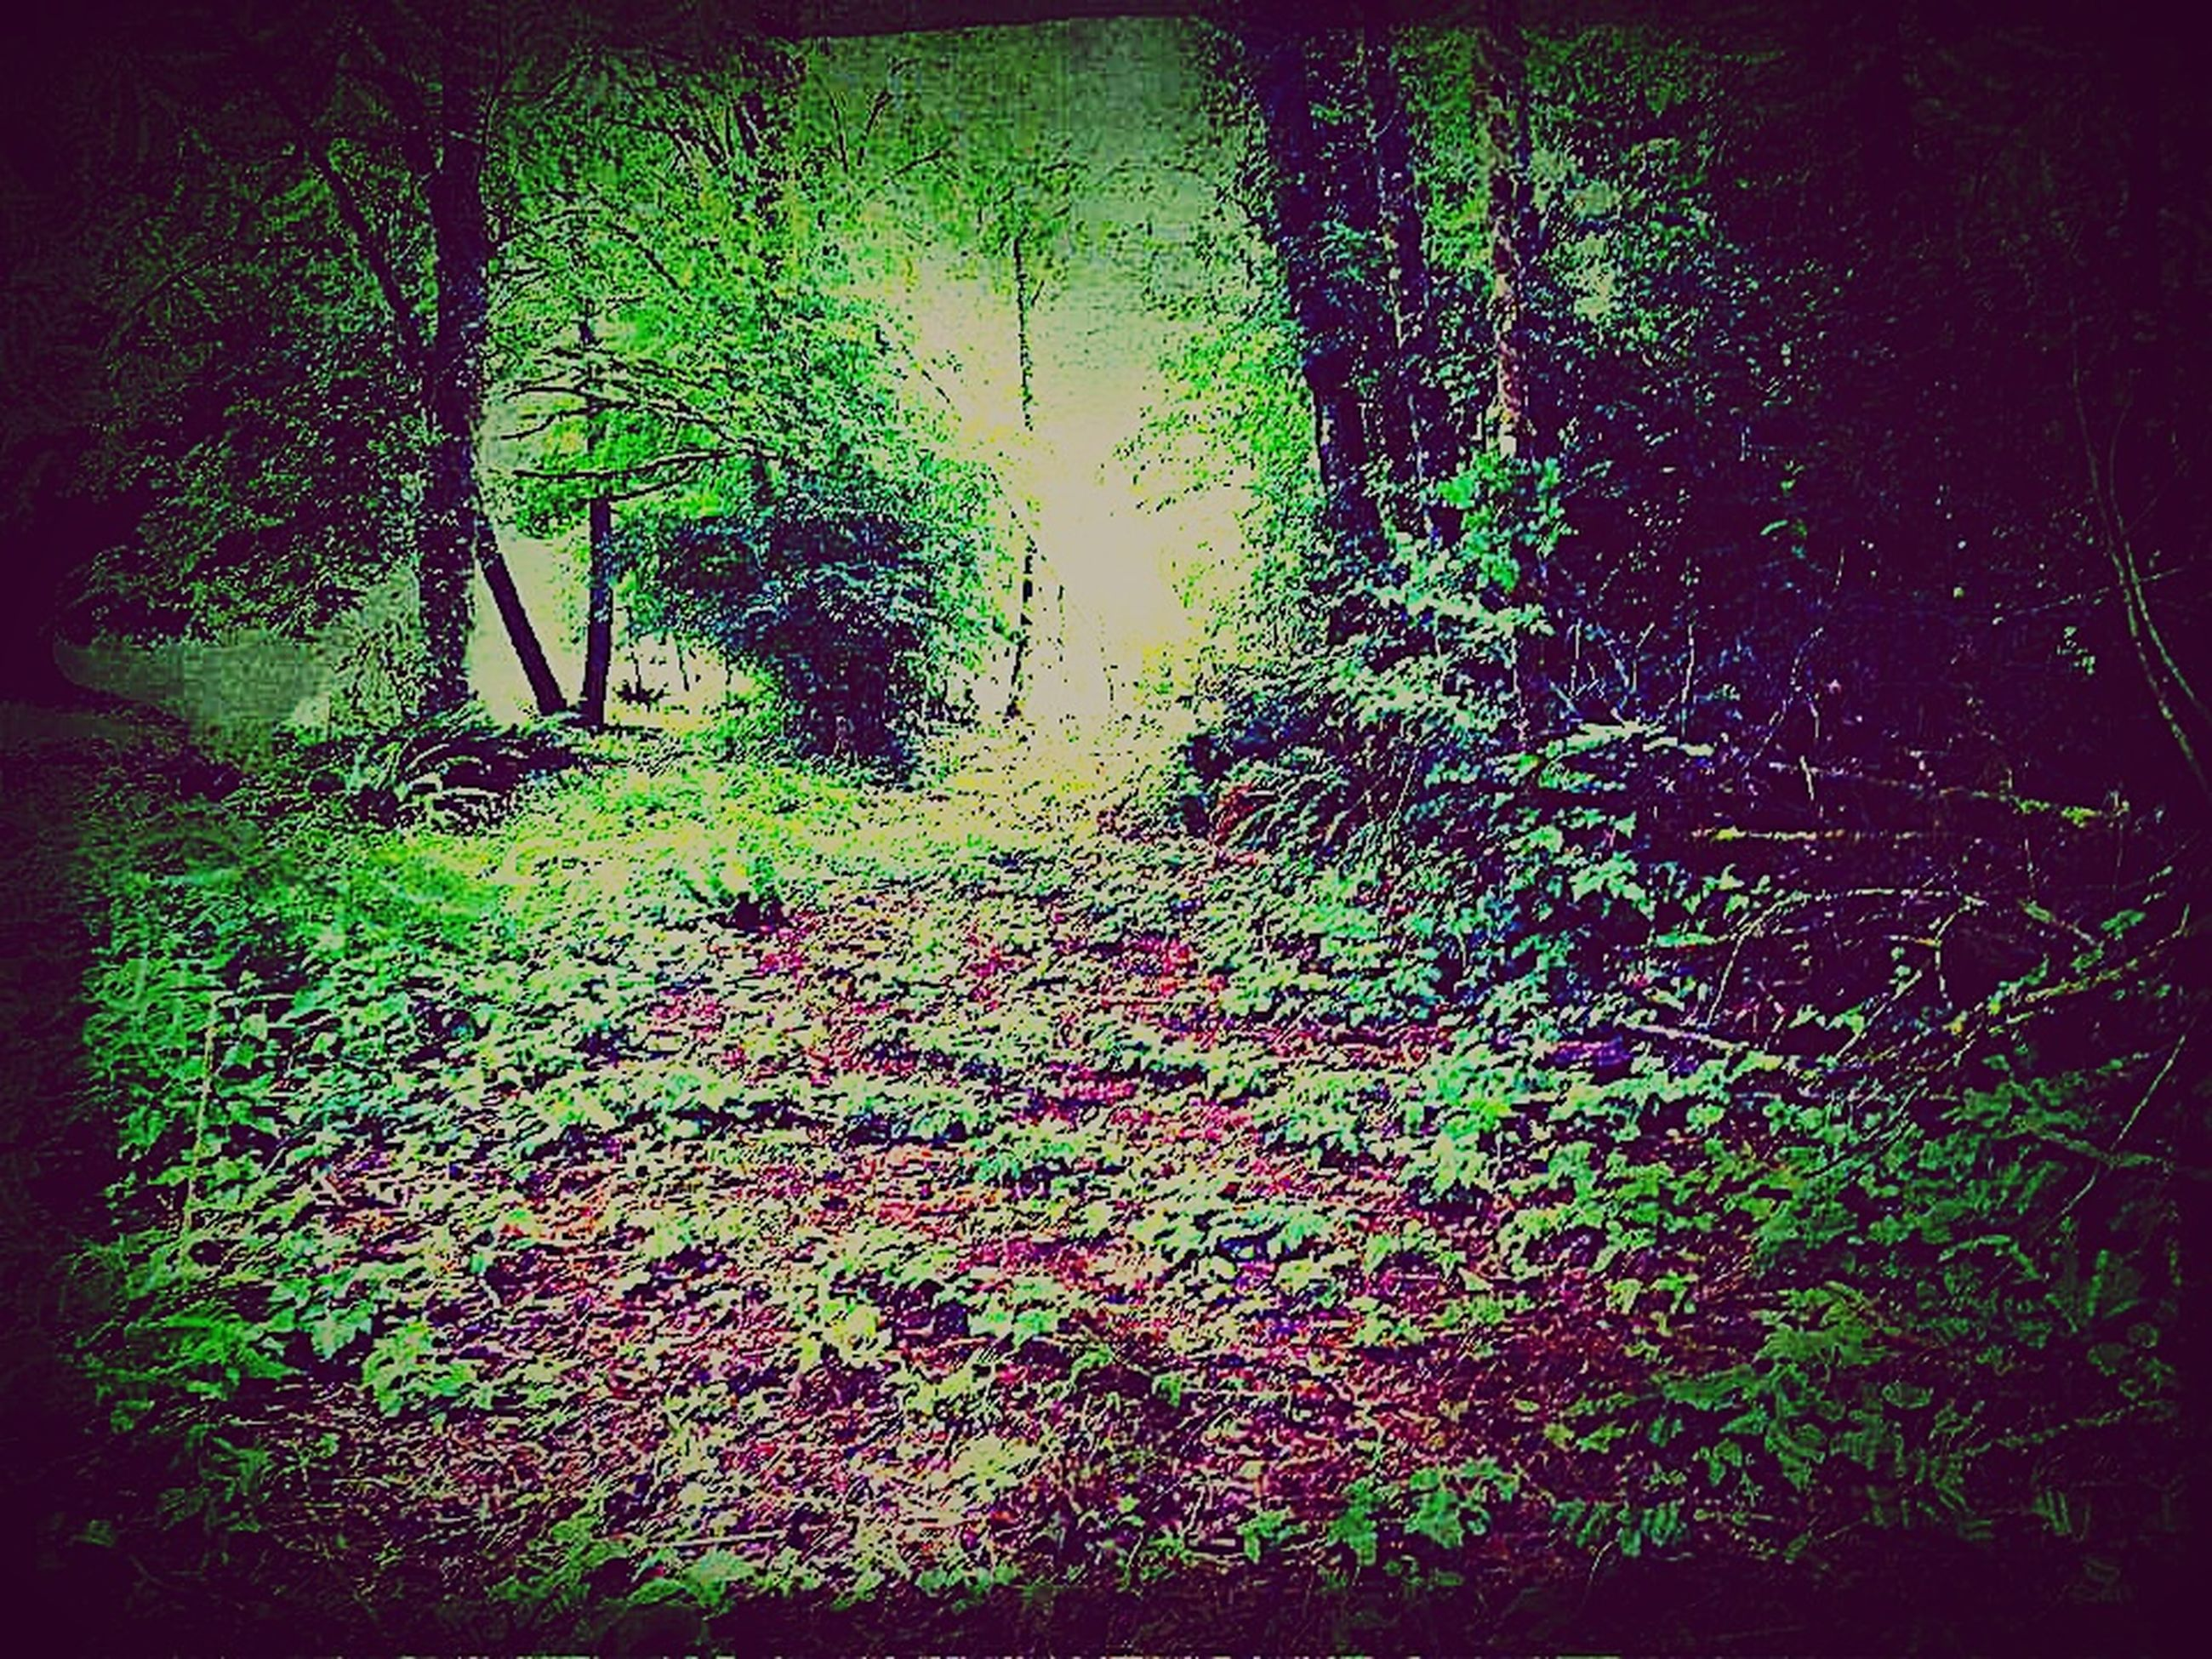 plant, tree, growth, nature, land, forest, no people, auto post production filter, vignette, day, leaf, plant part, tranquility, outdoors, green color, direction, grass, environment, dirt, tranquil scene, leaves